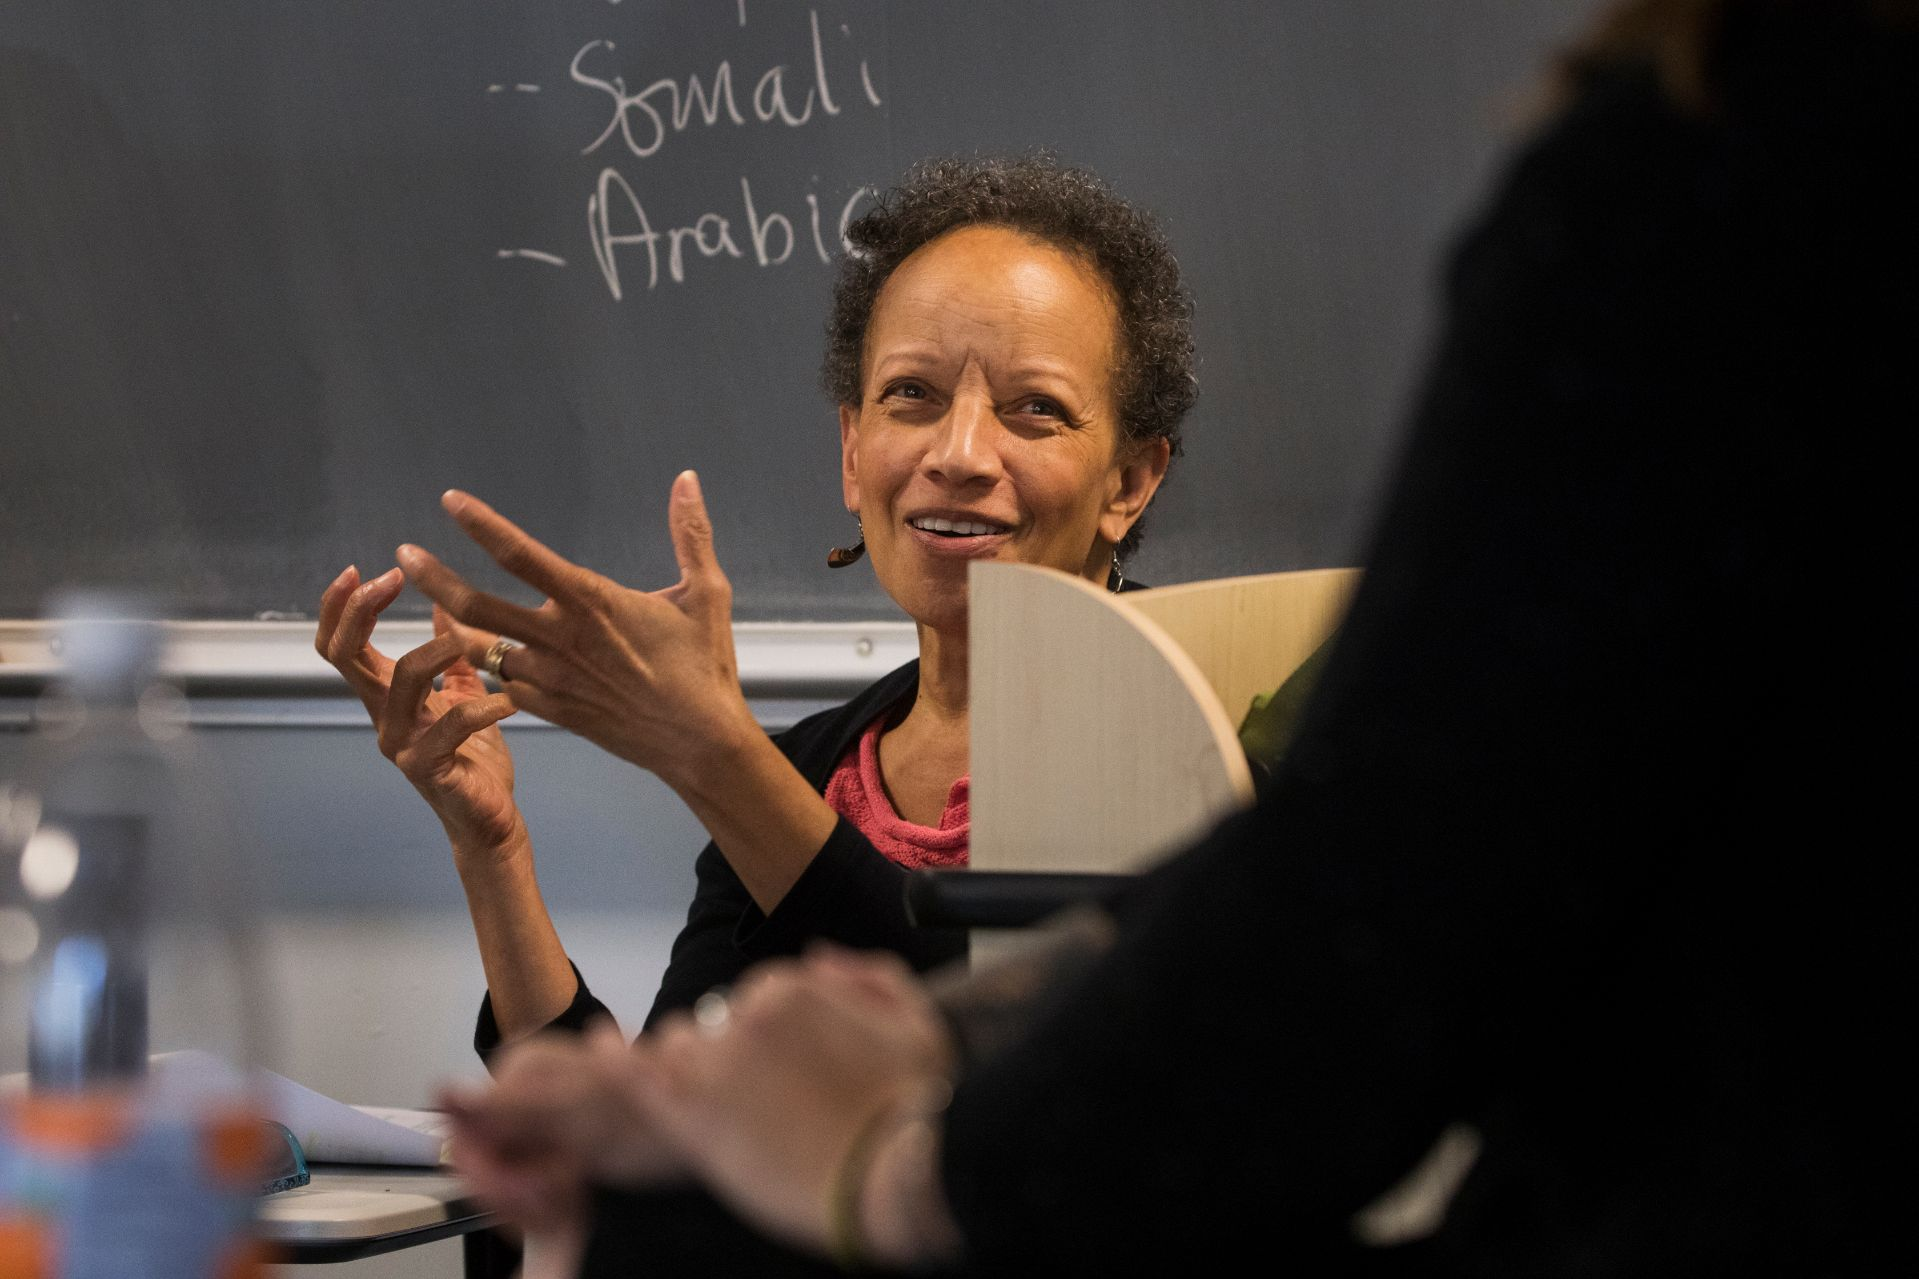 During a session of her course on gender and sexuality in U.S. politics, Associate Professor of Politics Leslie Hill responds to guest presenter Whitney Parrish of the Maine Women's Lobby and Maine Women's Policy Center. (Theophil Syslo/Bates College)